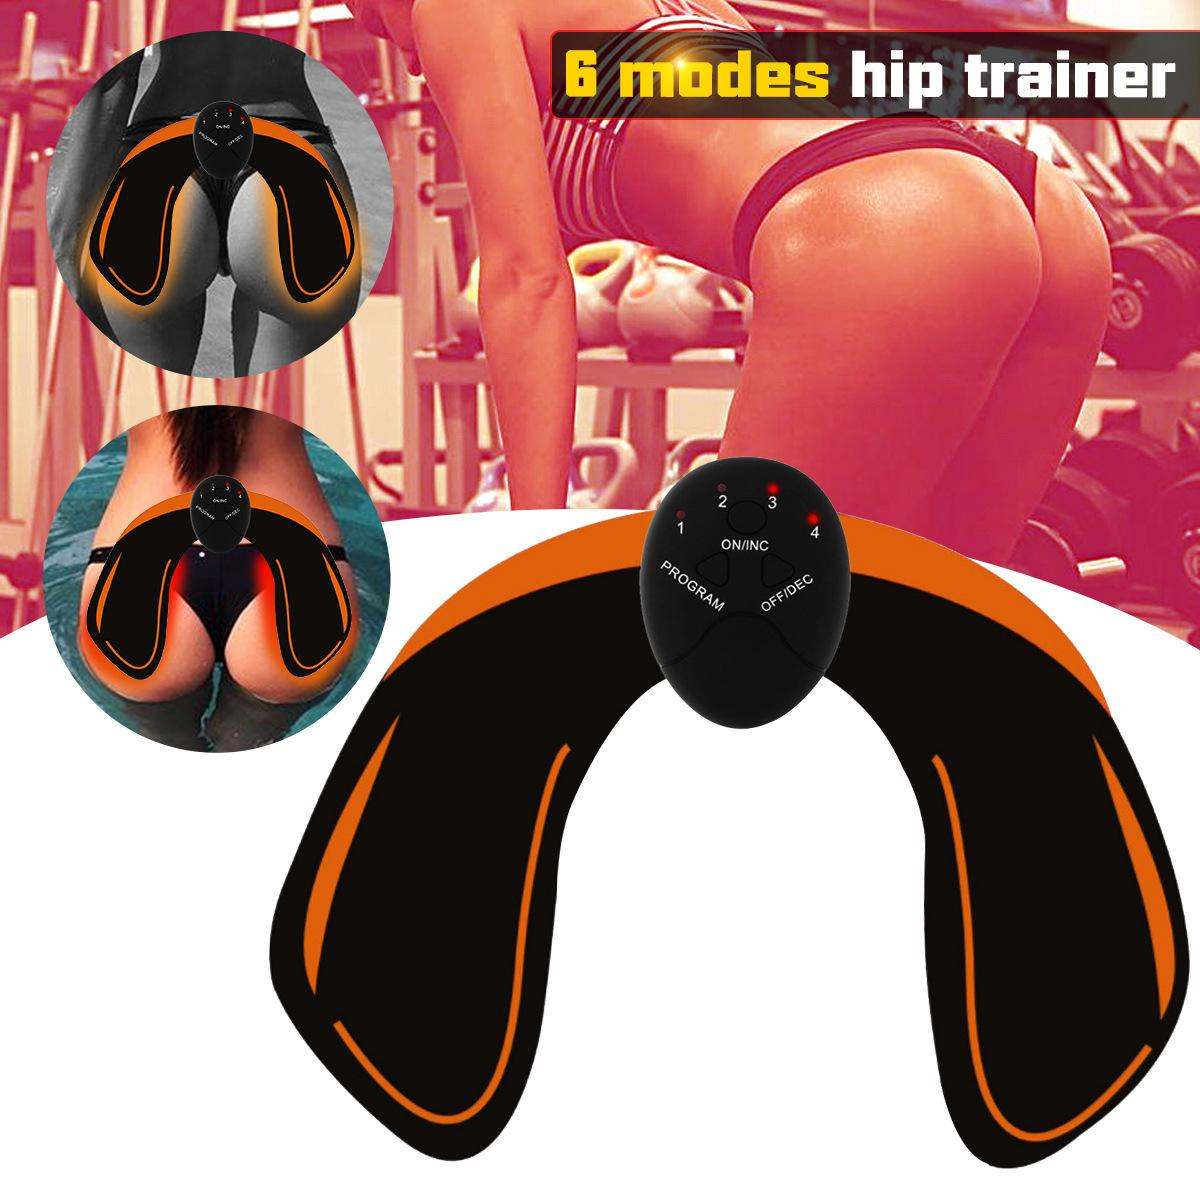 EMS Electrical Hips Trainer Abs Trainer Smart Fitness Training Gear Home Office Ab Workout Equipment Machine Buttocks Butt Stimulator